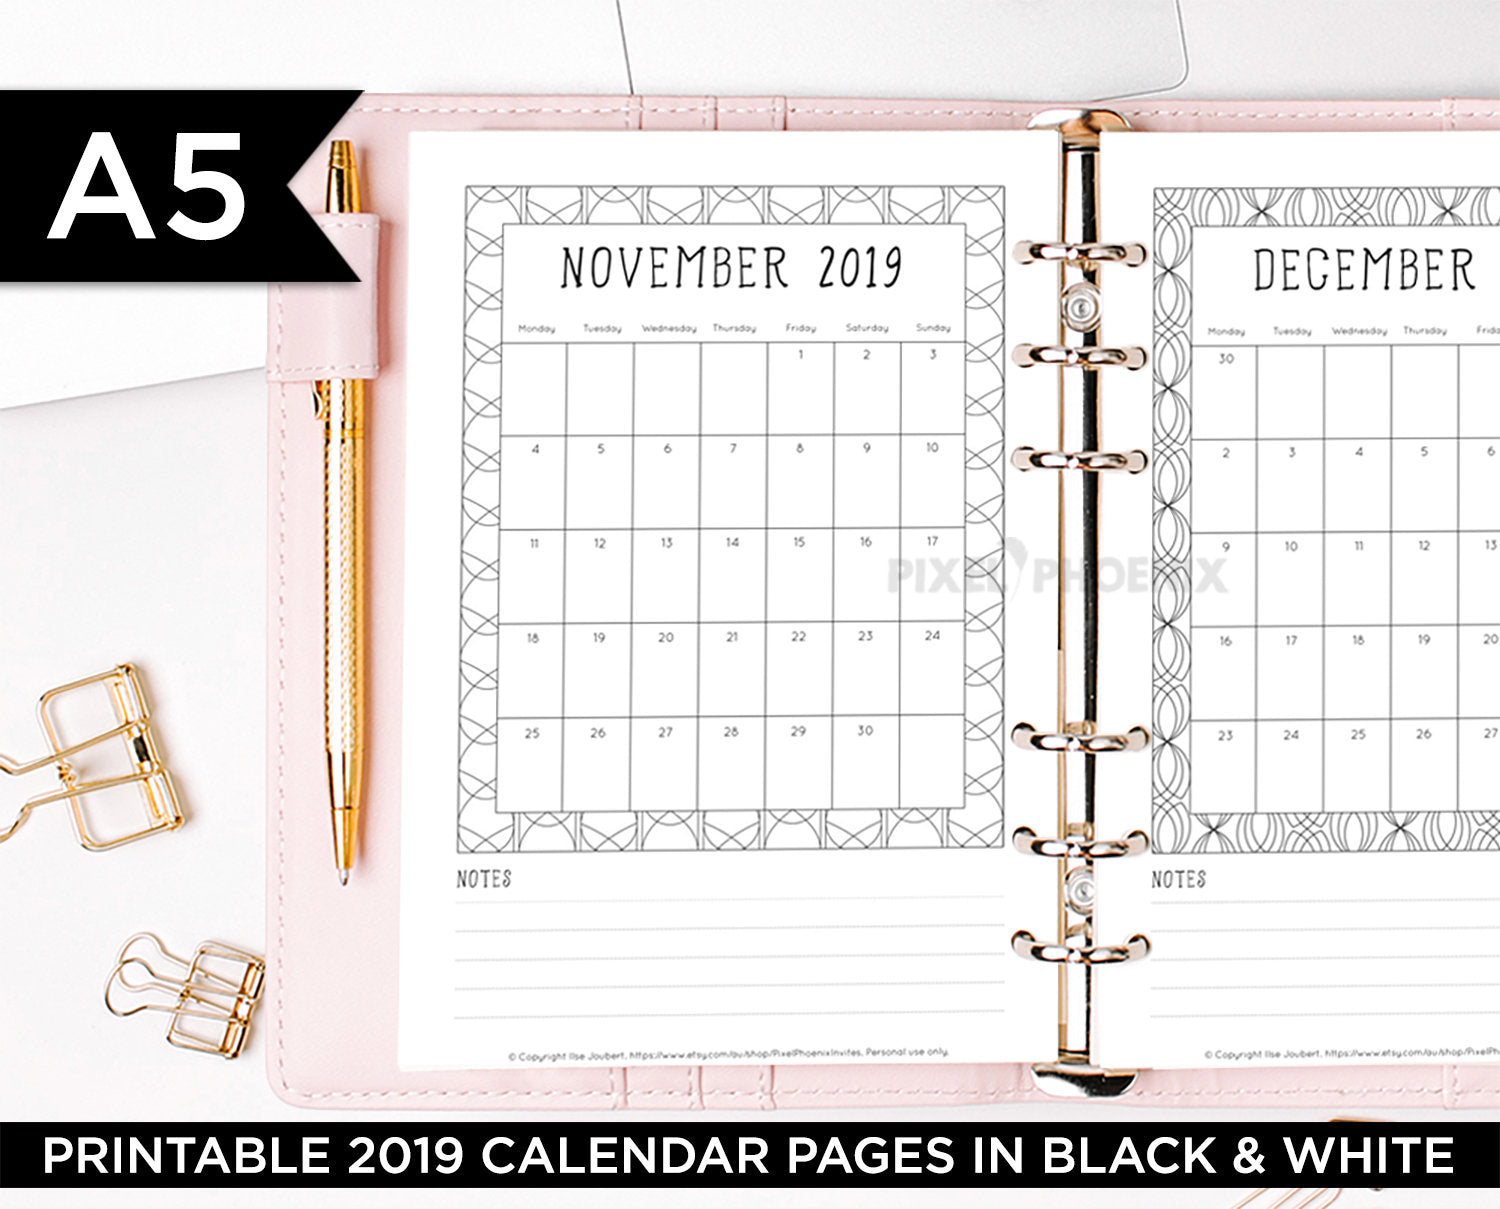 A5 Printable 2019 Calendar pages to add to your Bullet Journal, Planner or Binder